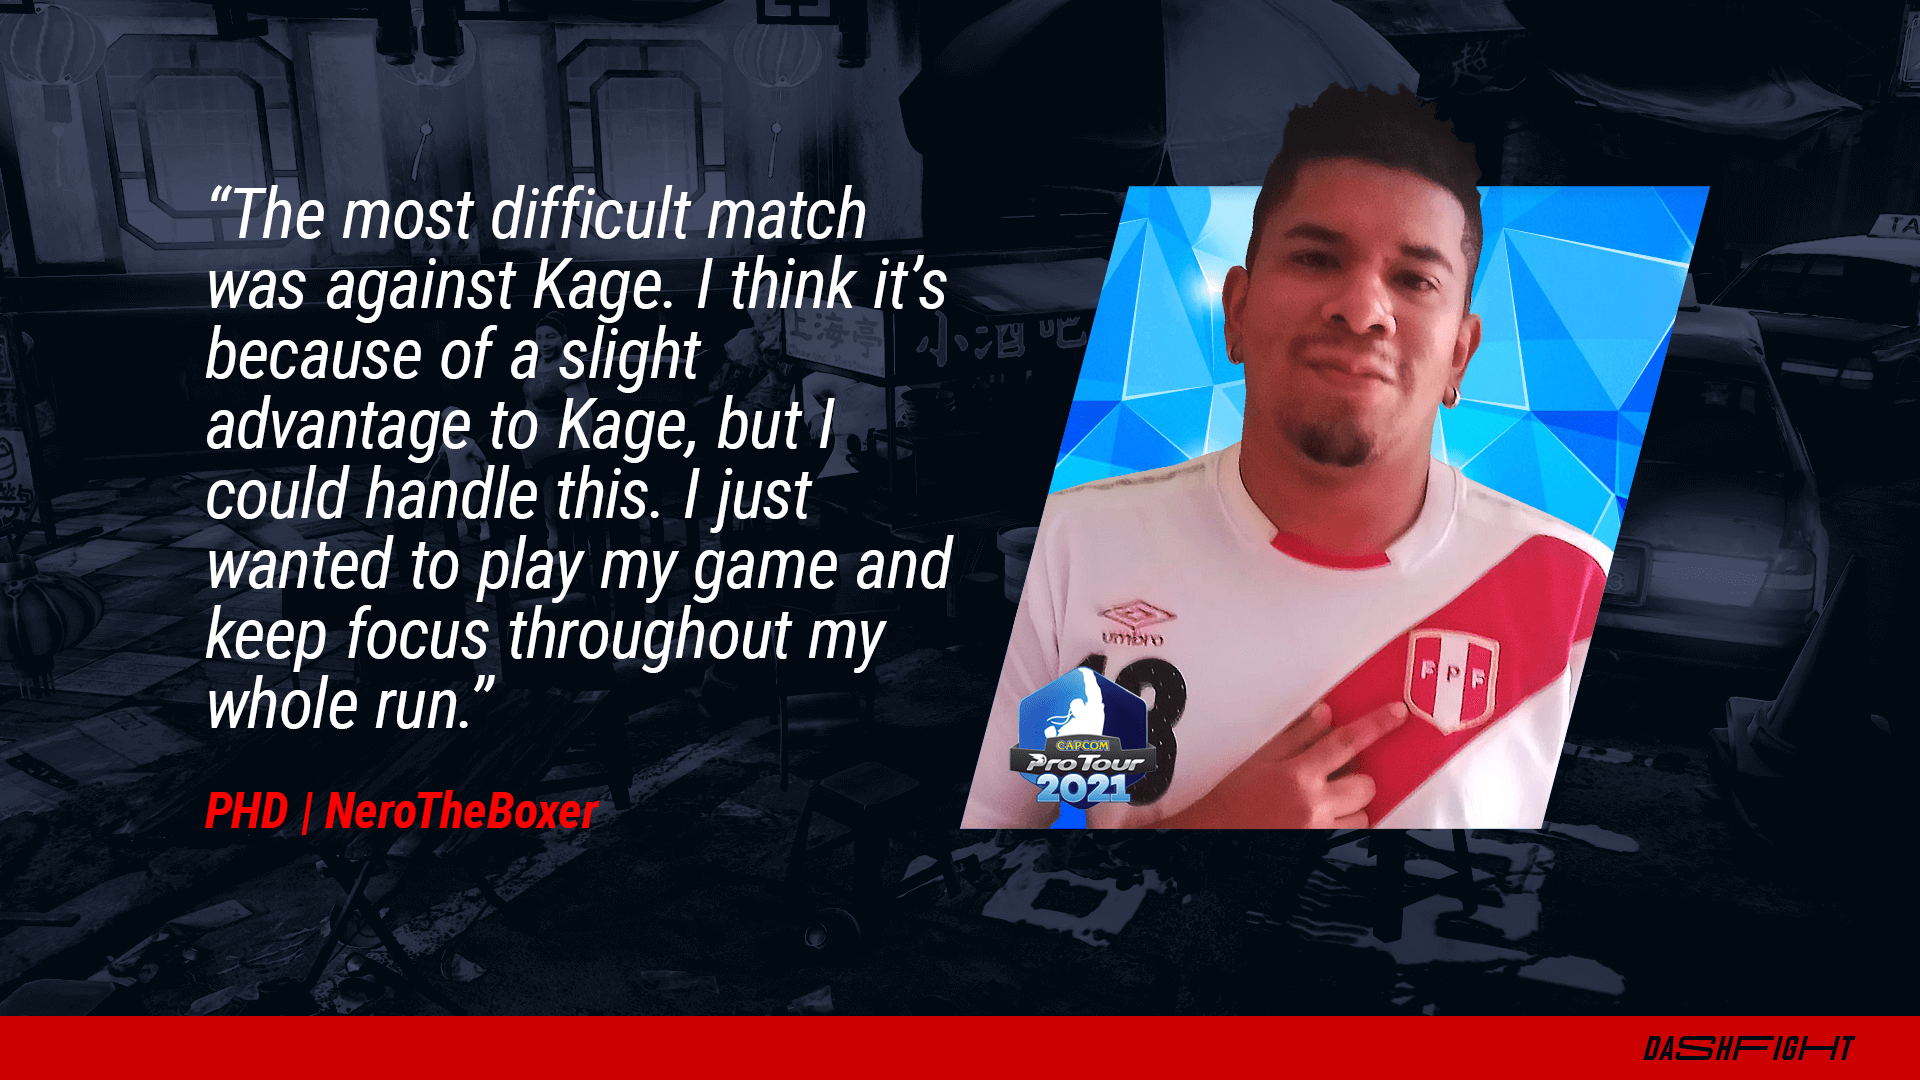 DashFight interview with the SFV player NeroTheBoxer - a quote image